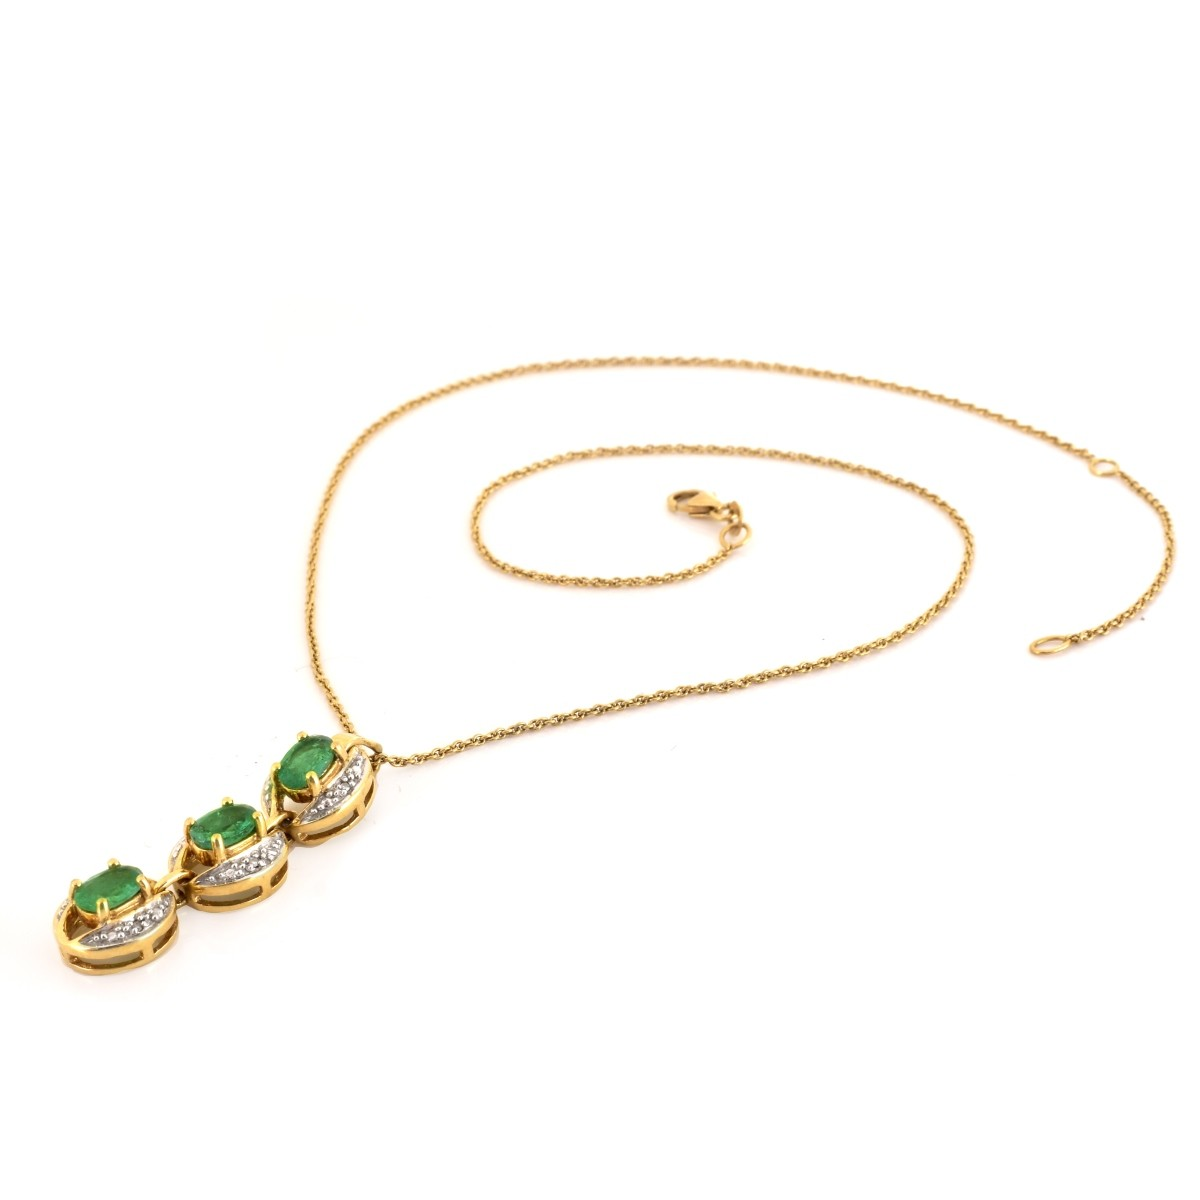 Emerald, Diamond and 18K Gold Pendant Necklace